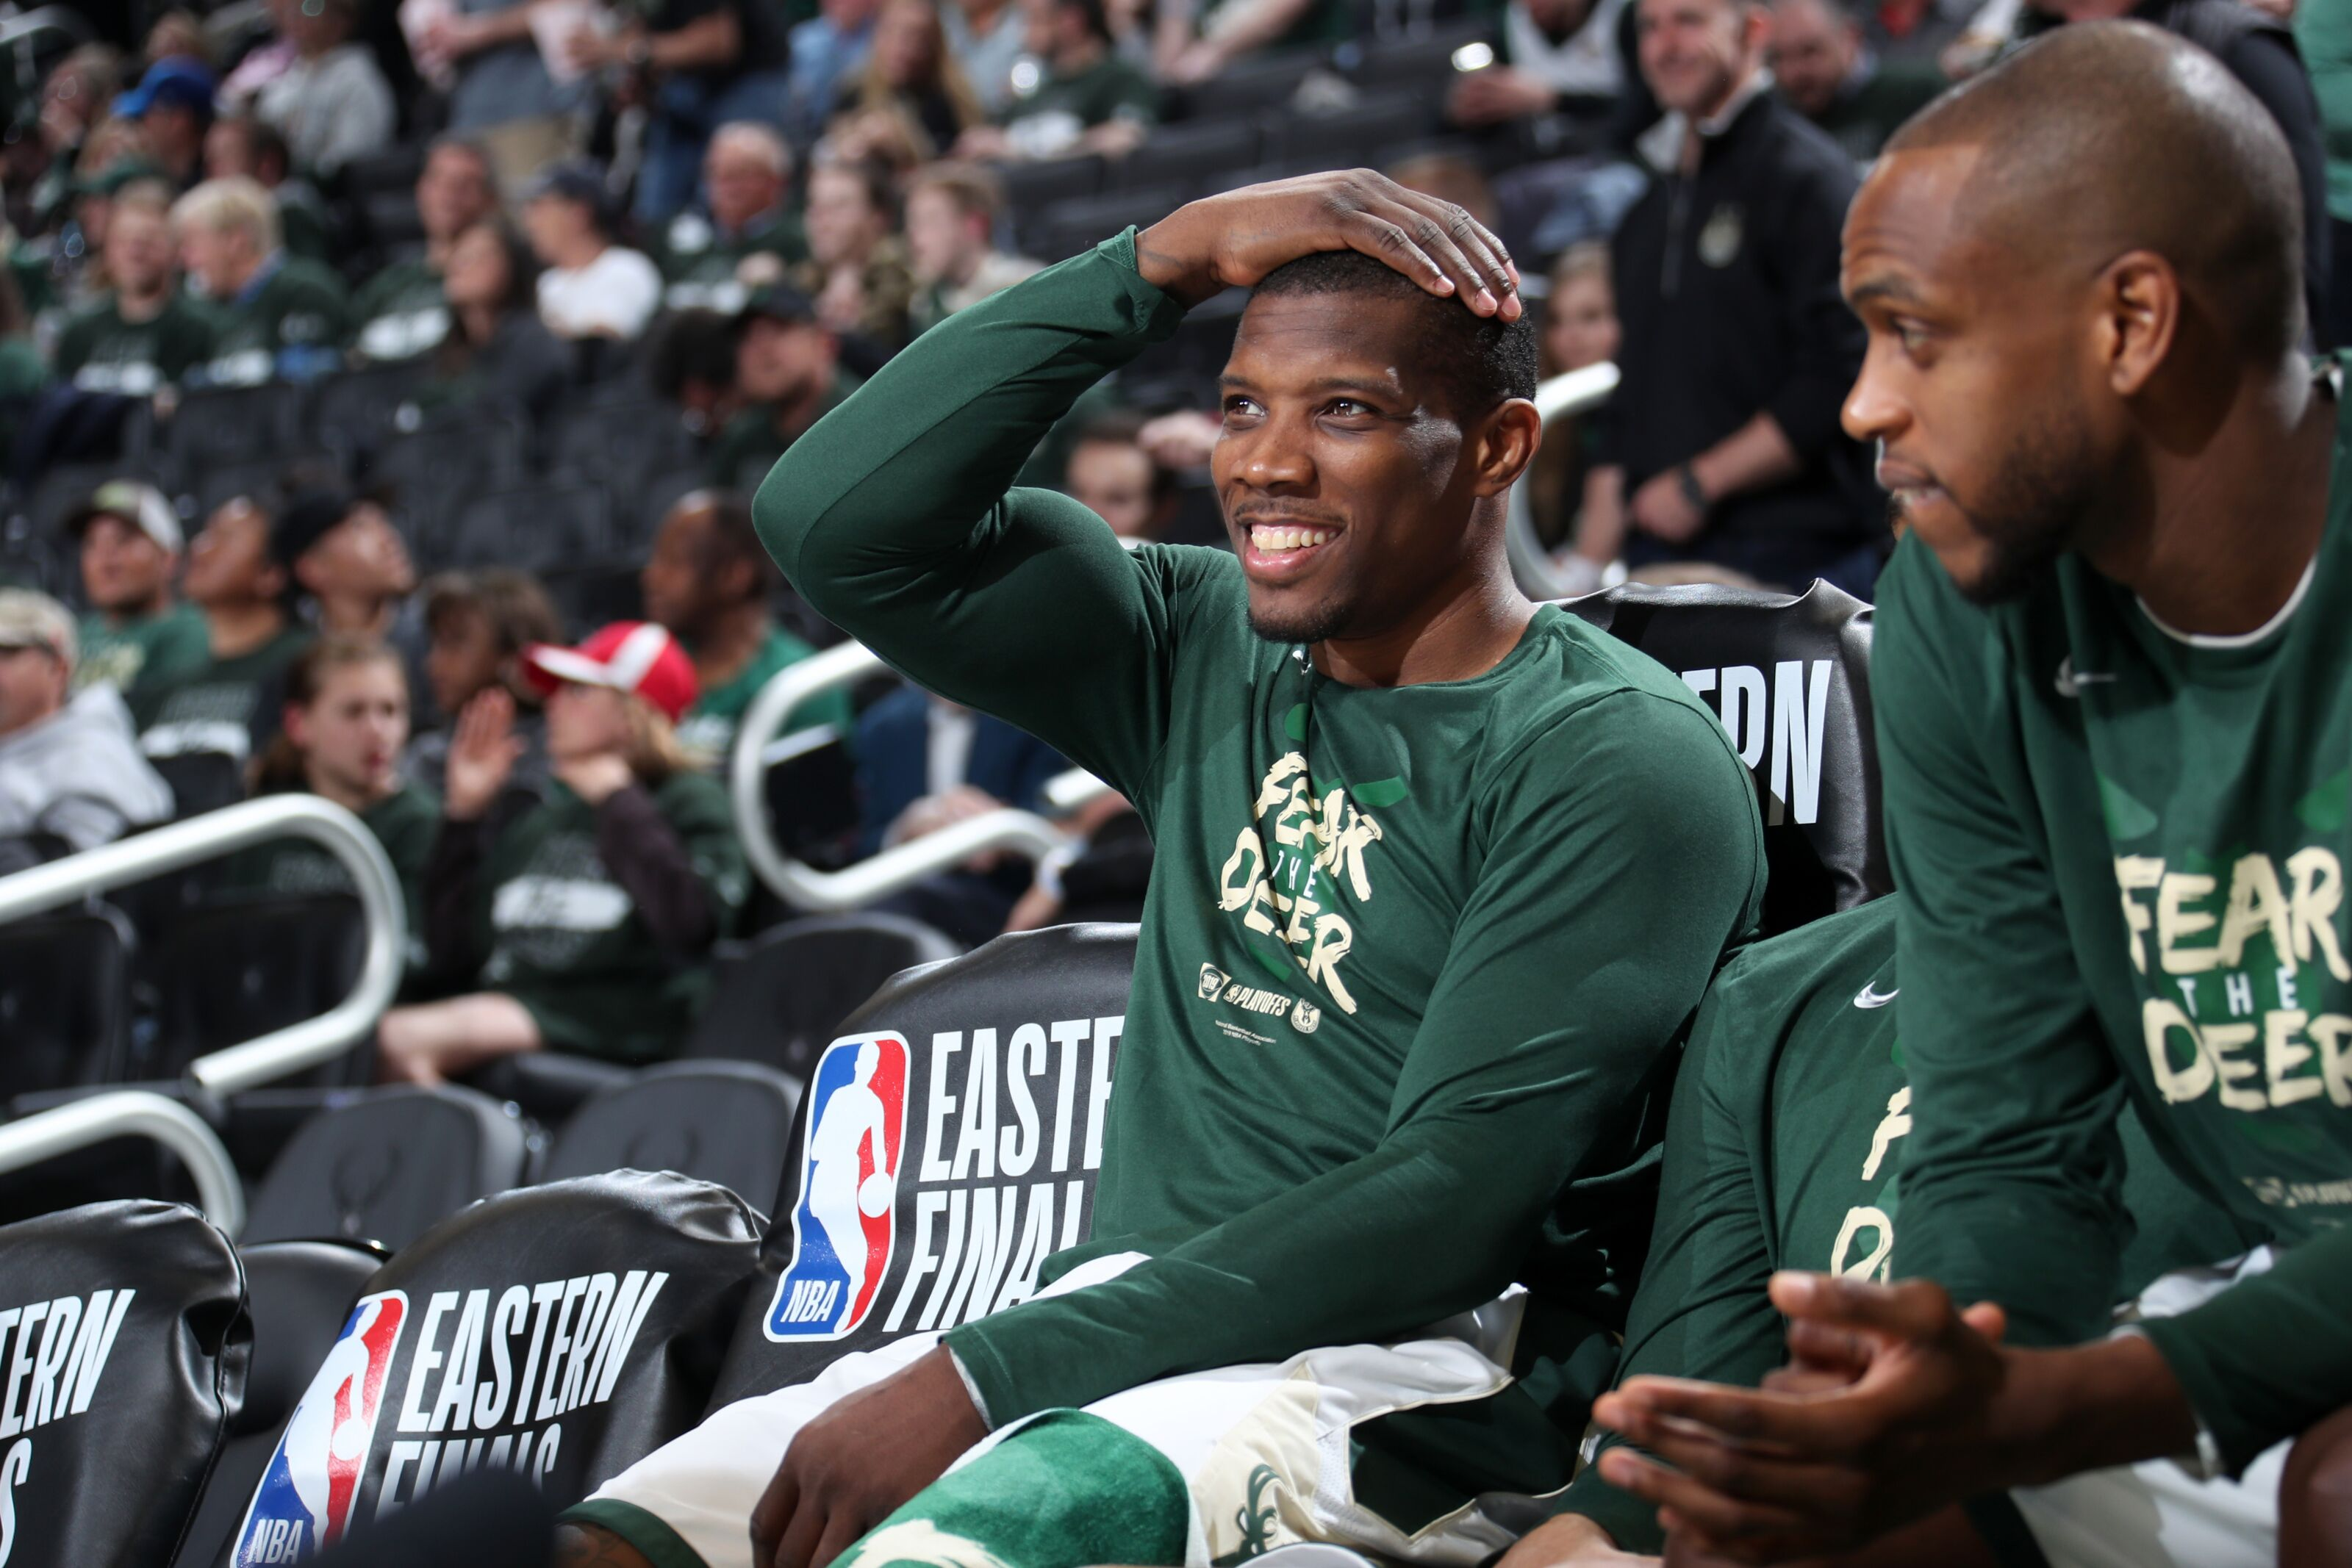 Will the Bucks regret the Eric Bledsoe extension?